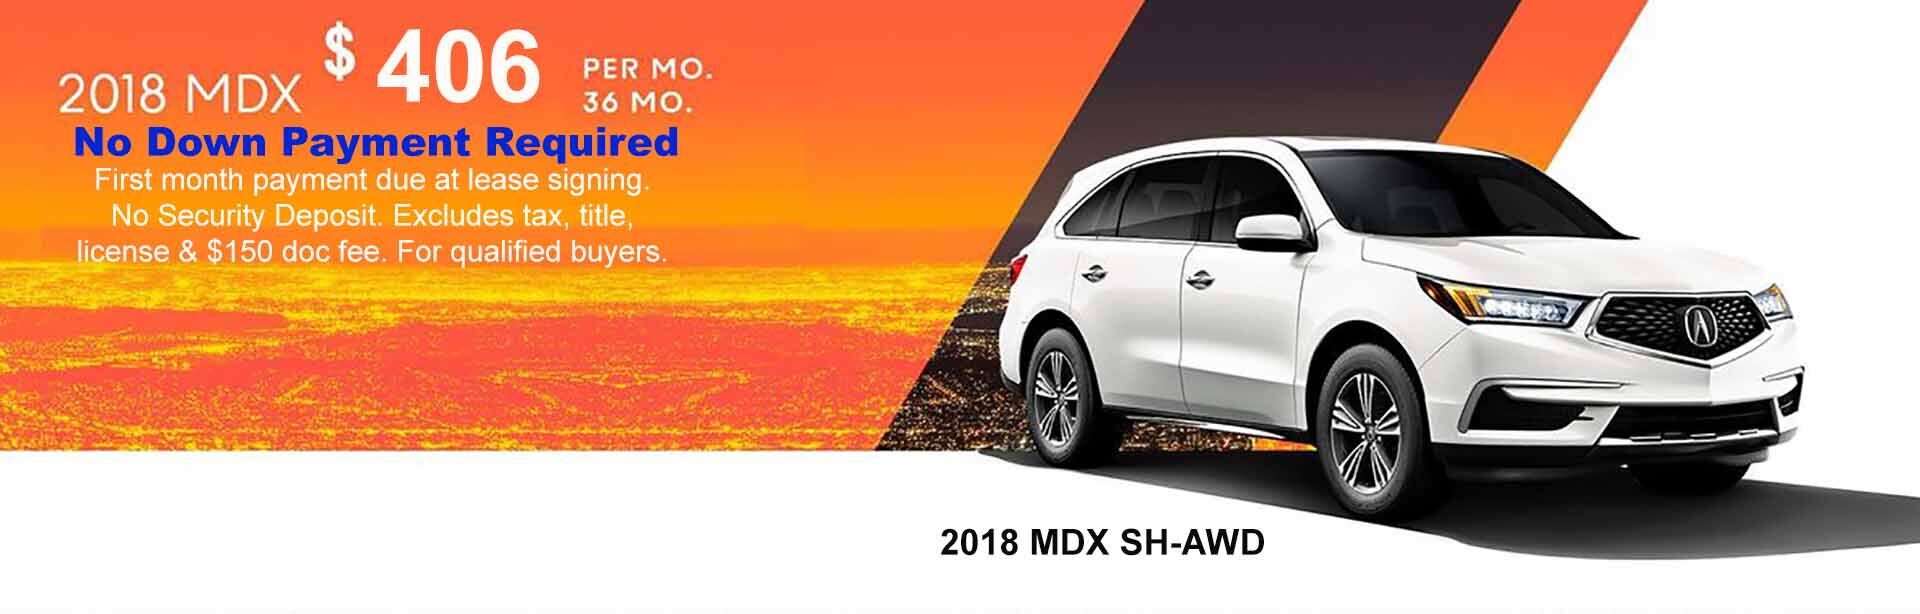 2018 MDX Lease Special